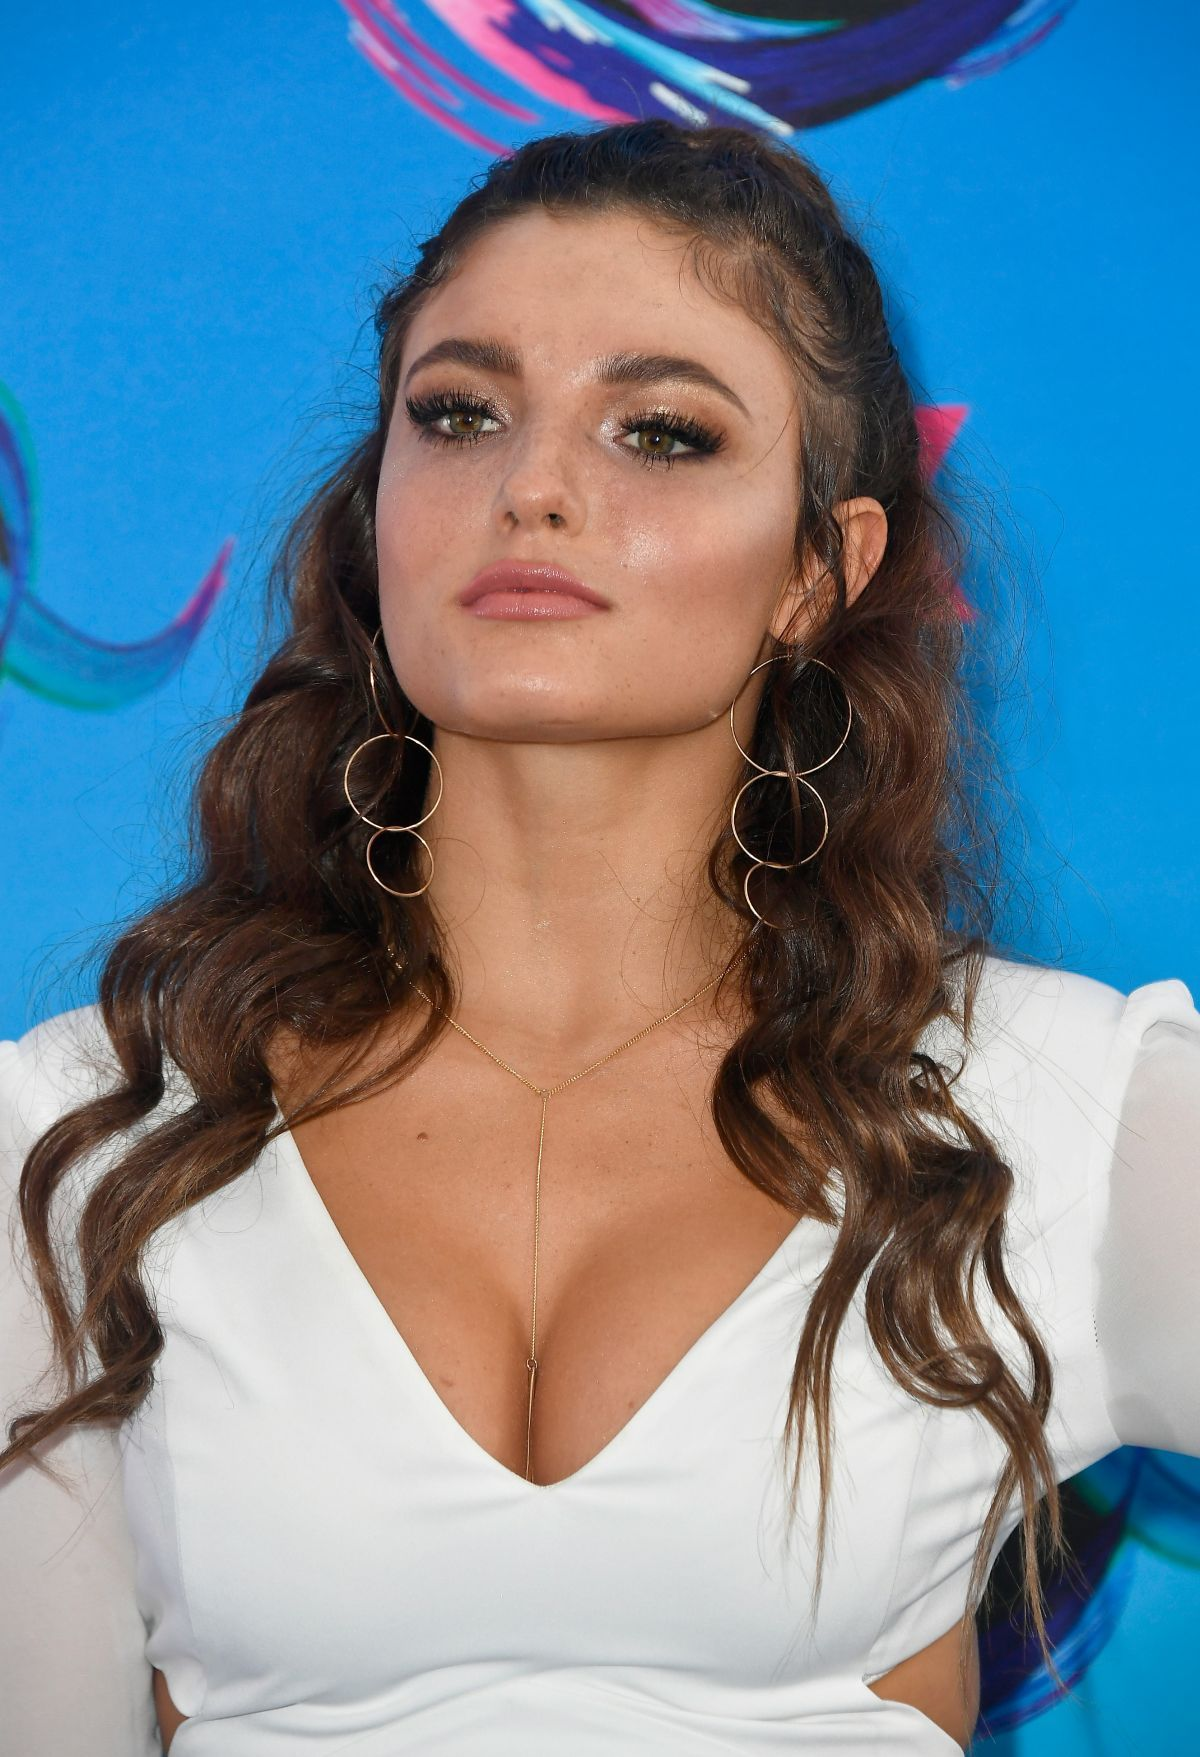 Video Jade Chynoweth nudes (87 photos), Topless, Is a cute, Twitter, braless 2020